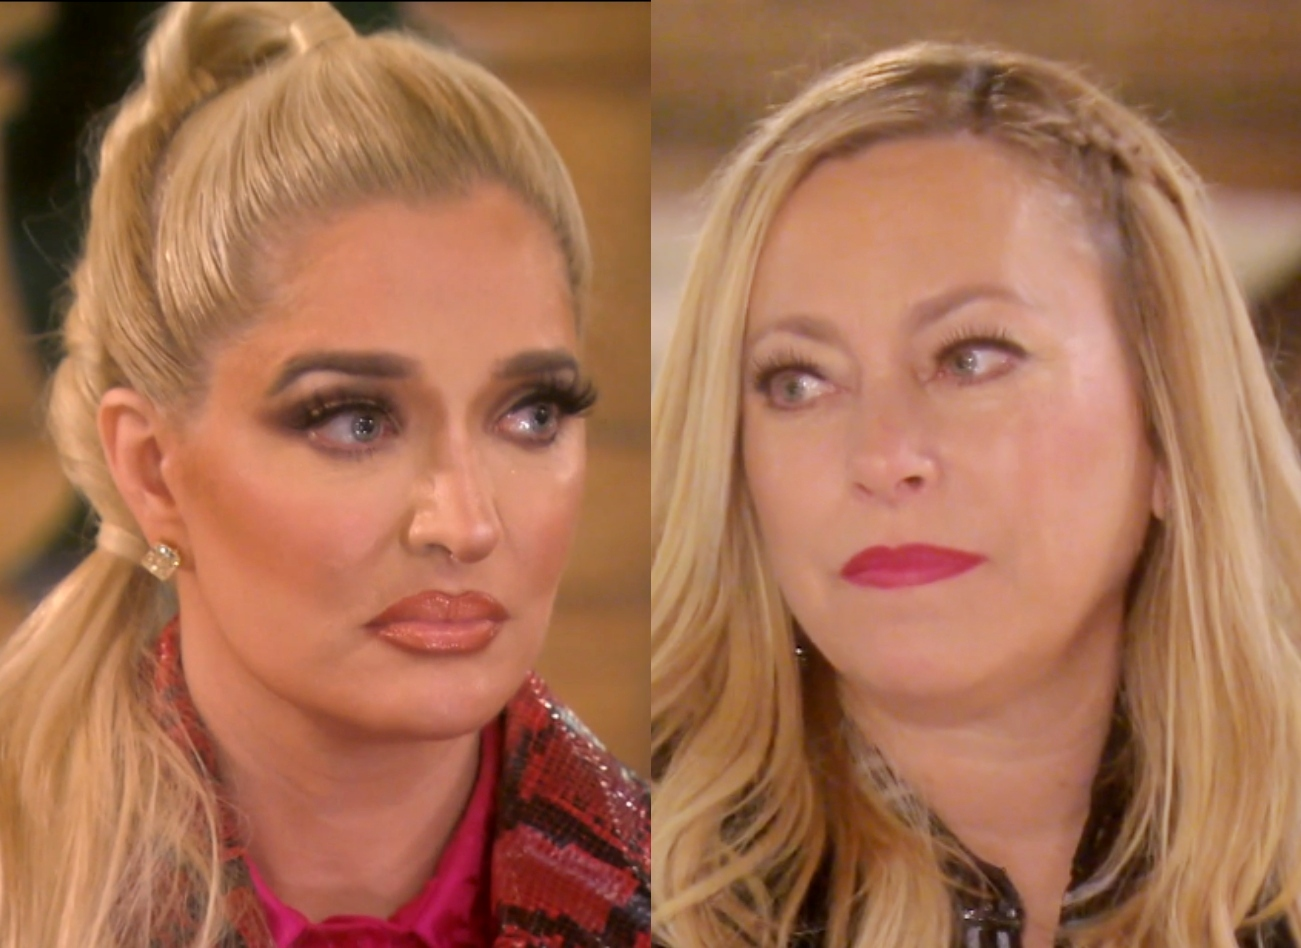 RHOBH Recap: Sutton Stops Playing Detective, But Erika Keeps Telling Tales; Plus Fun Erika Comes Out